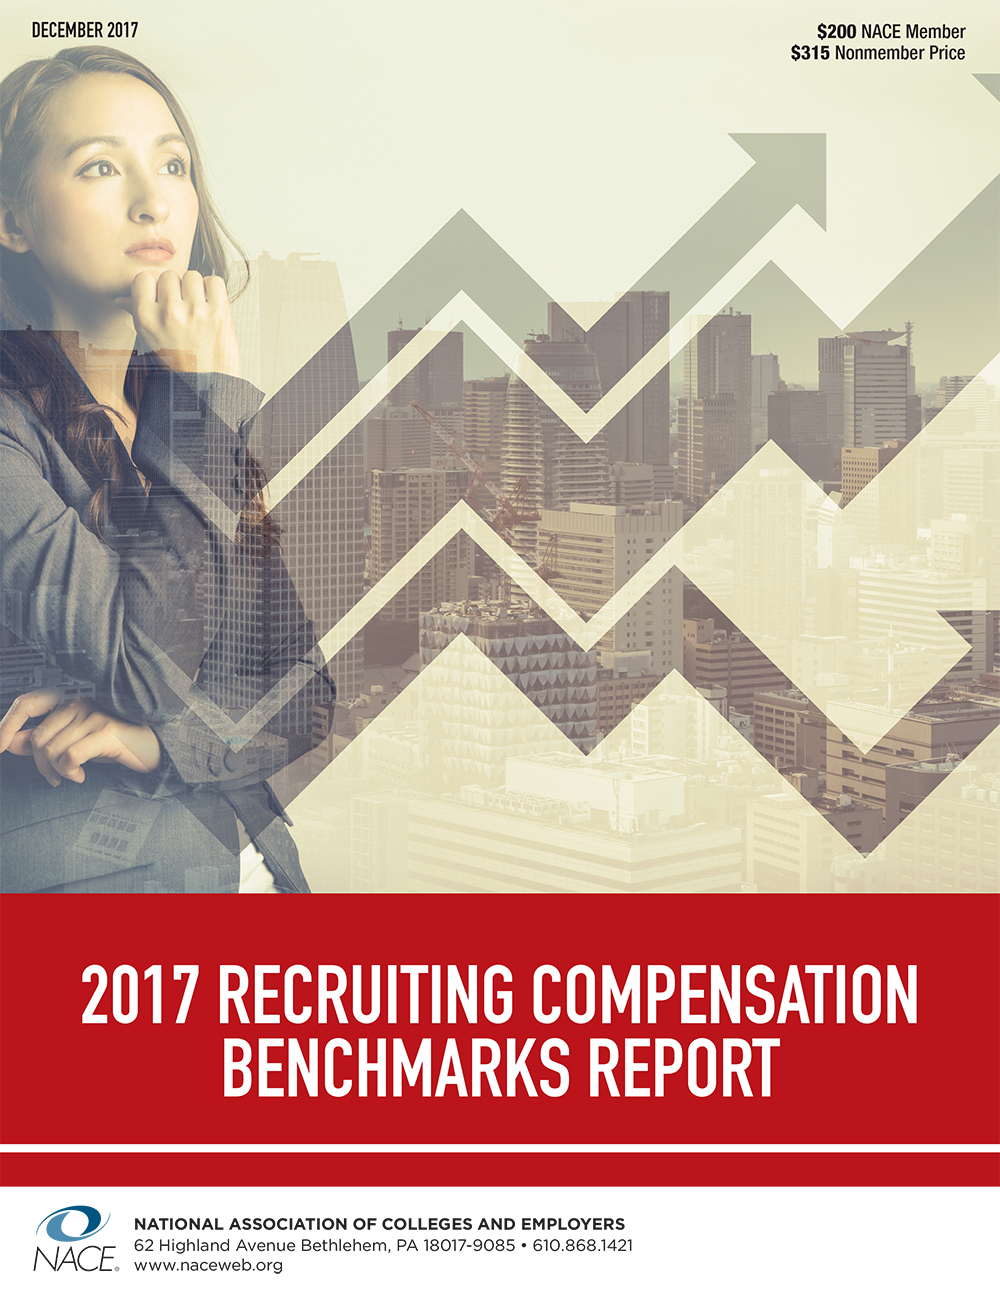 Recruiter Compensation Report 2017